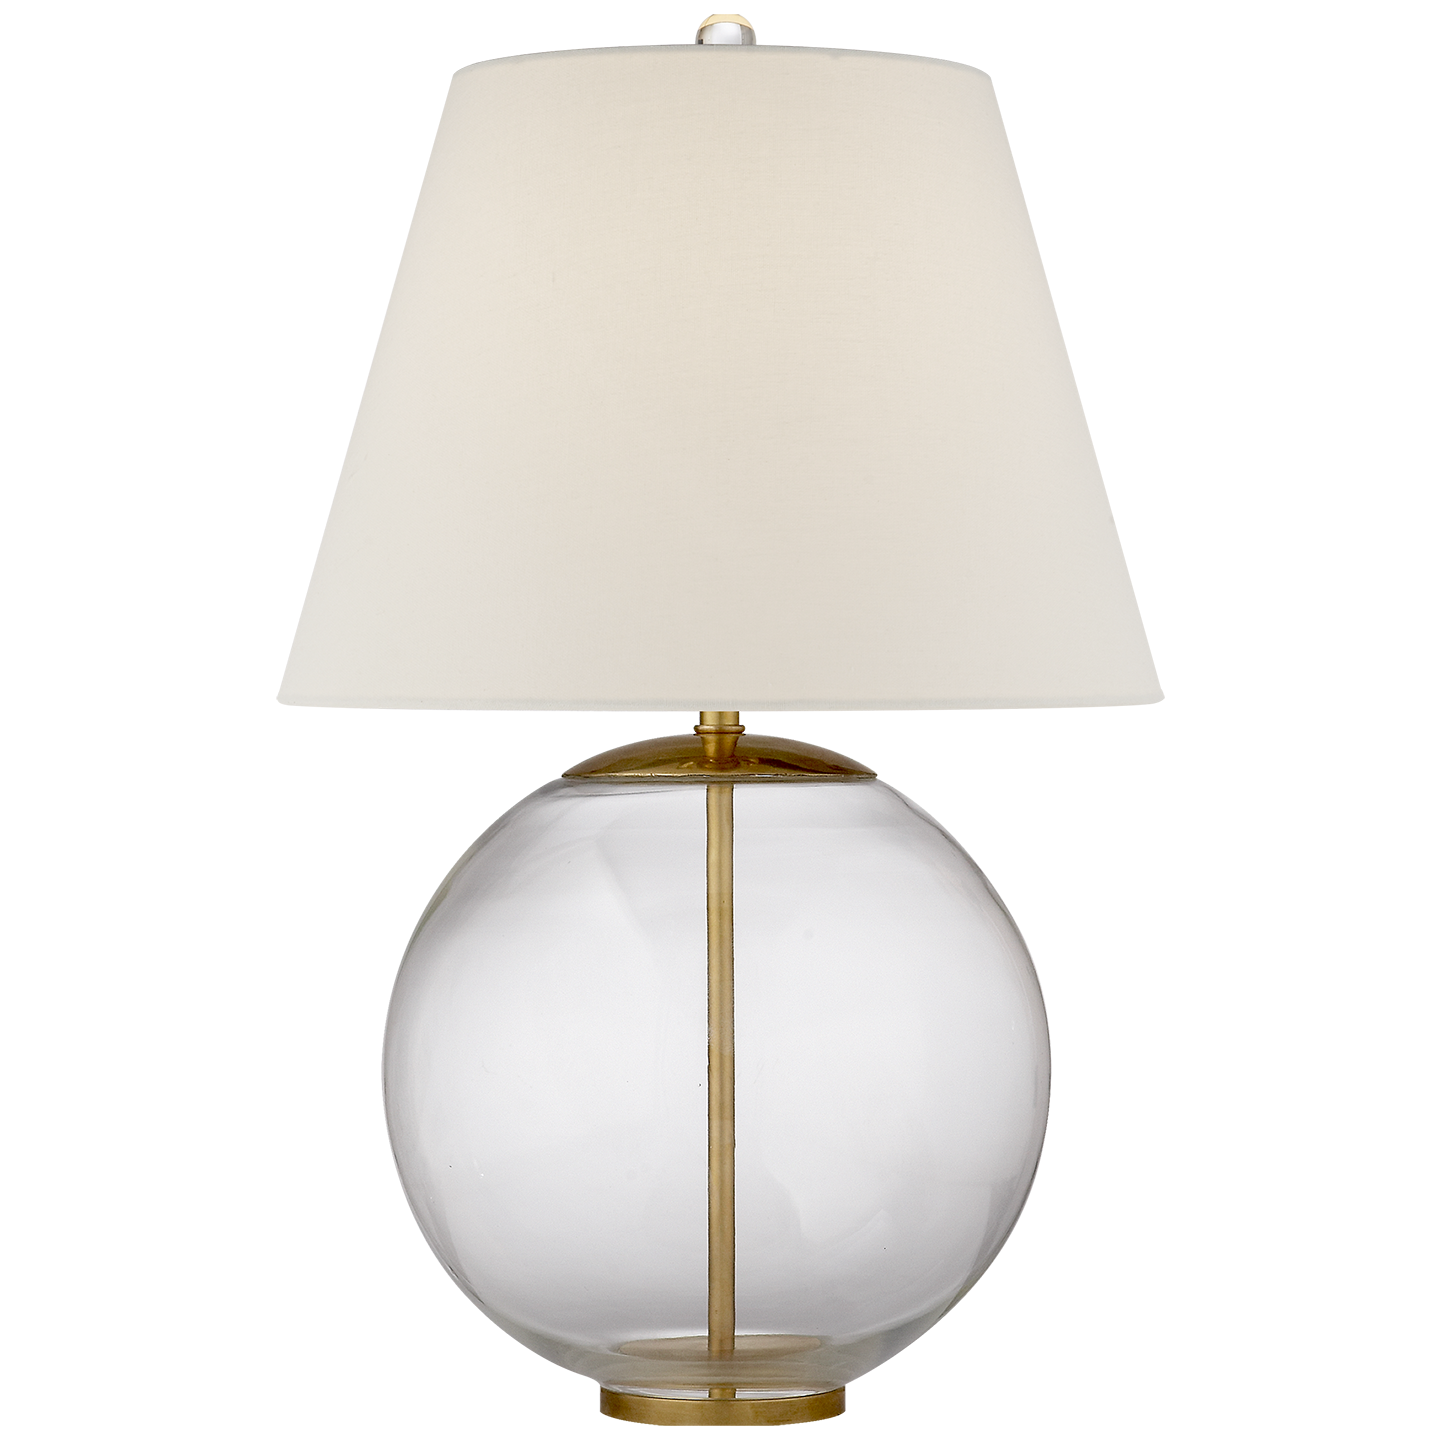 Table Lamp in Crystal with Linen Shade   16.5dx24h   VCARN3000CG-L